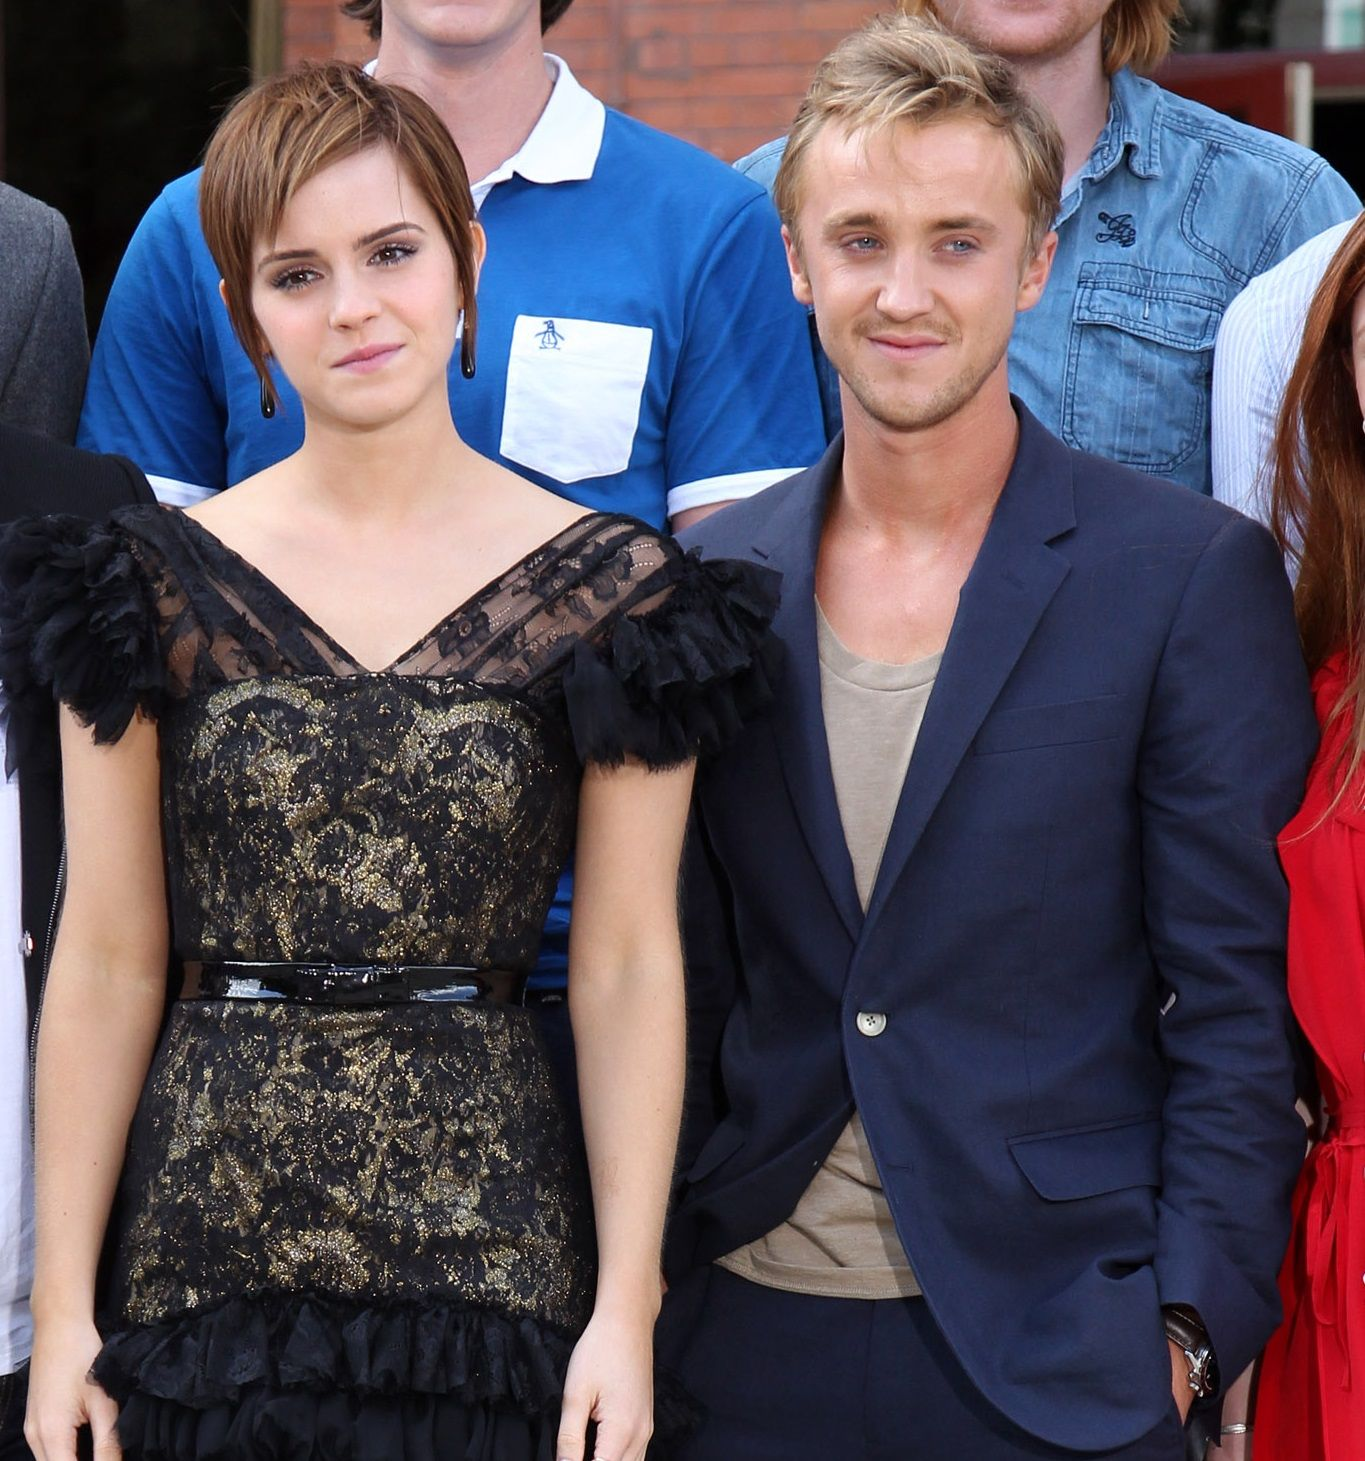 Emma Watson and Tom Felton Had a 'Harry Potter' Reunion That Will Make Your Potterhead Heart Sing